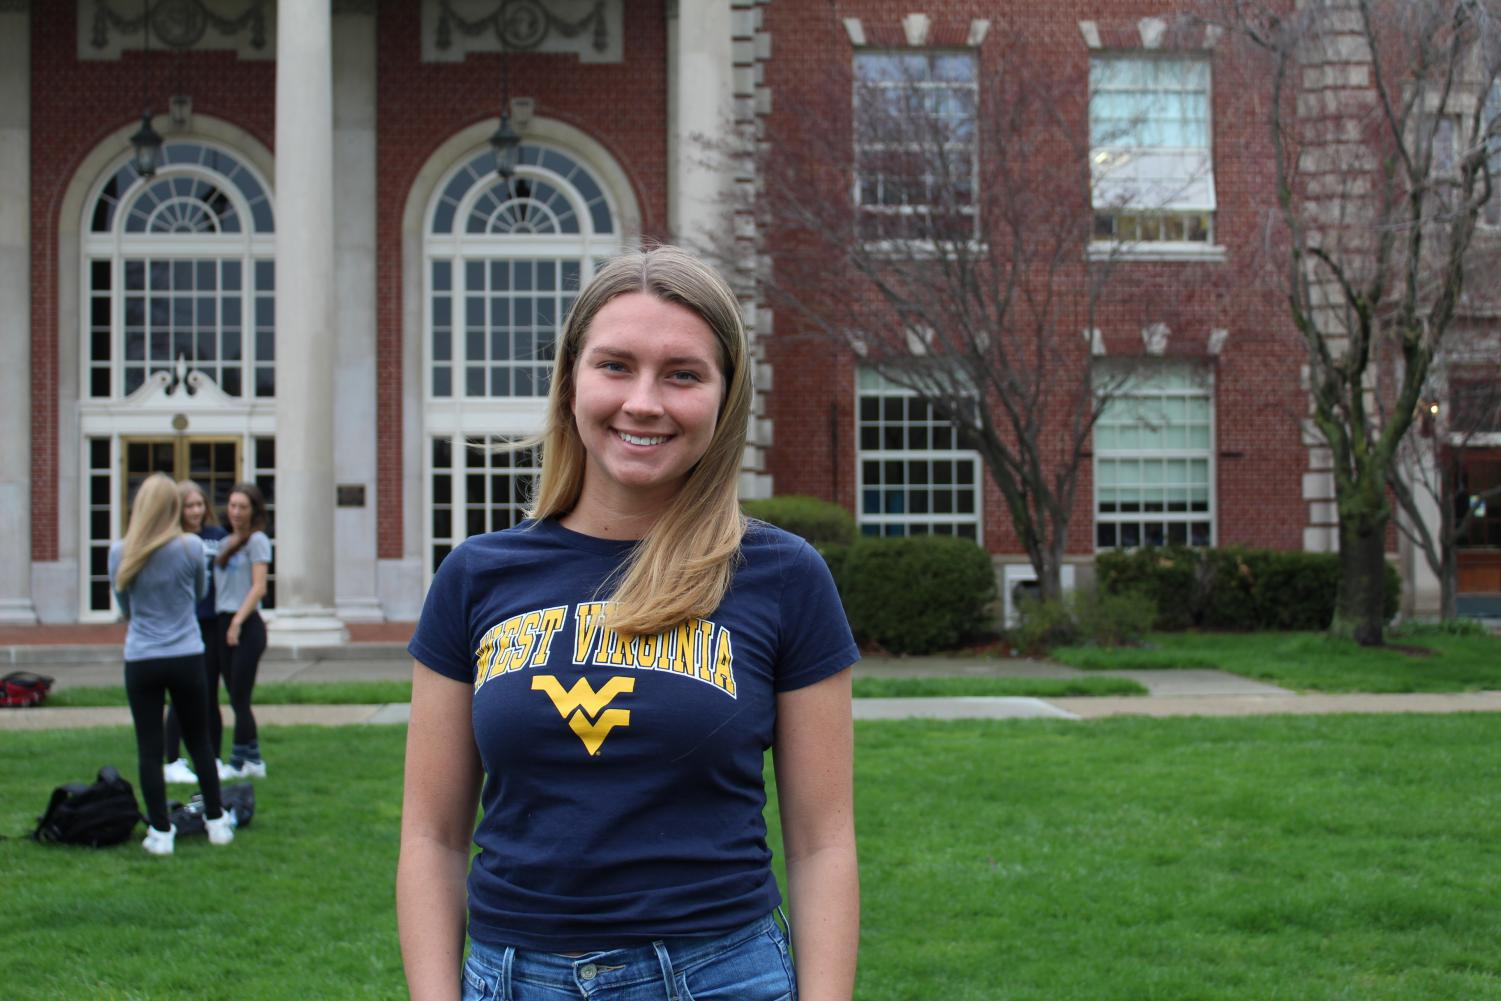 Gwyn Tiderington '19 smiles for decision day. Tiderington will not only study forensic science but will also play field hockey at West Virginia University. Photo by Frannie O'Shea '21.